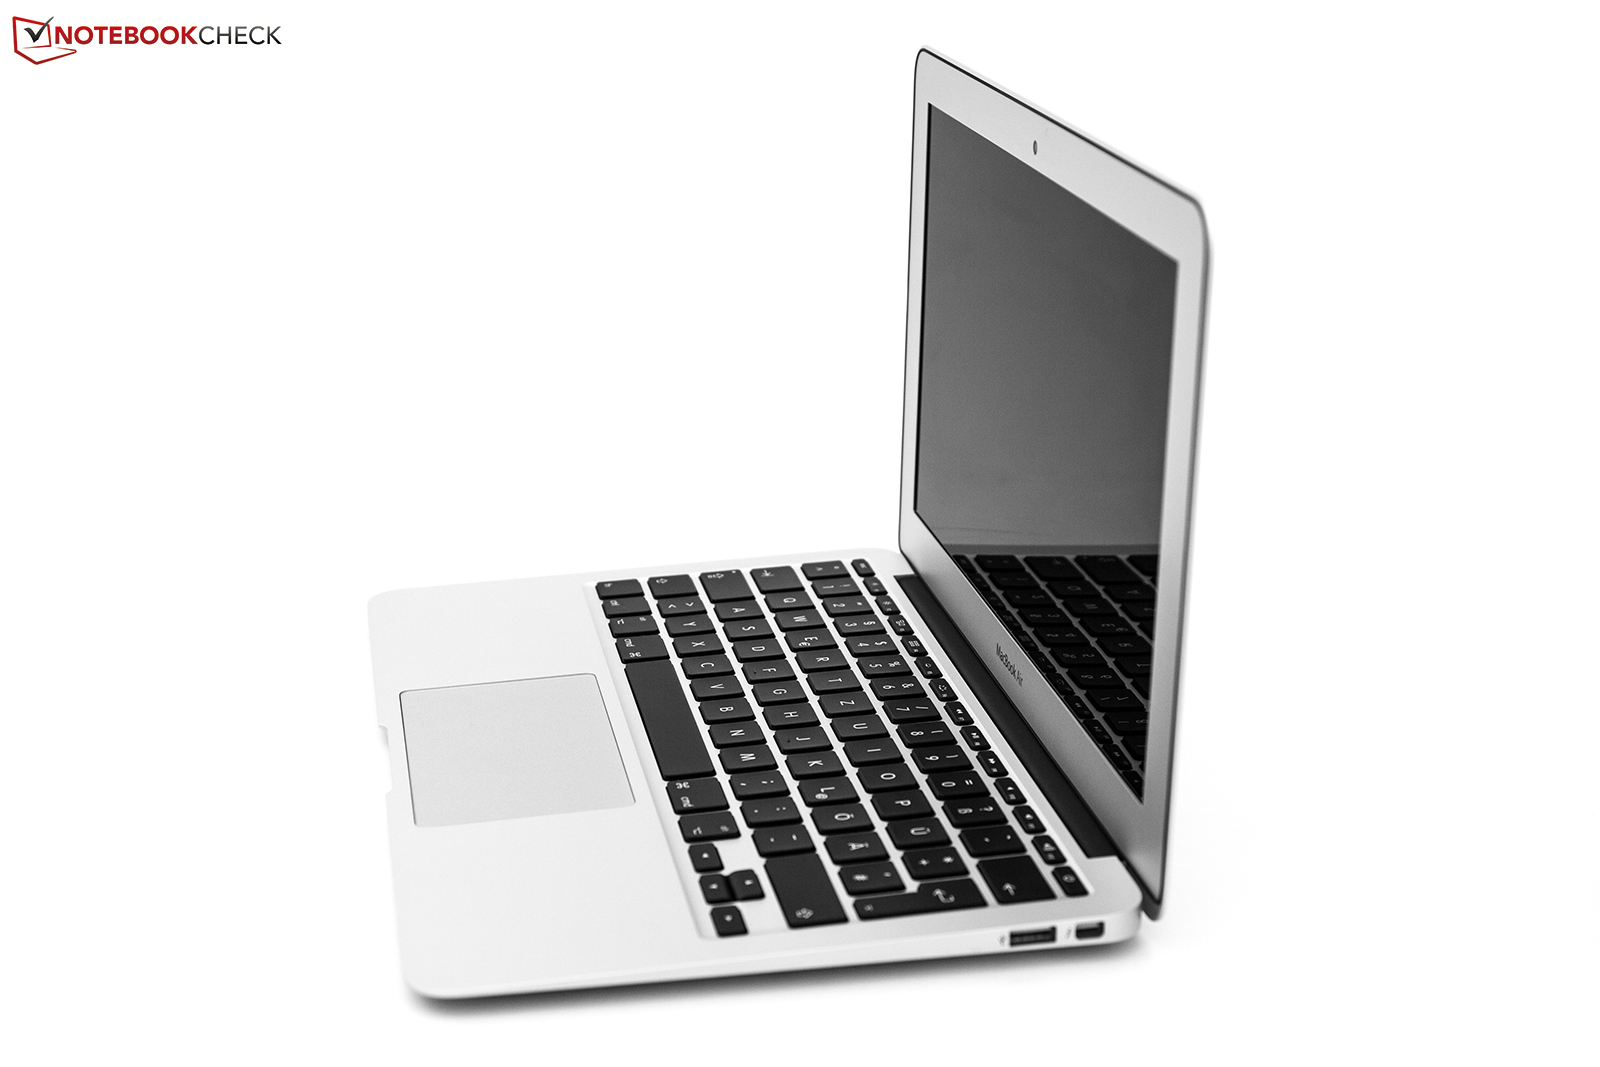 quality design b6038 eb034 Review Apple MacBook Air 11 Mid 2012 Subnotebook - NotebookCheck.net ...